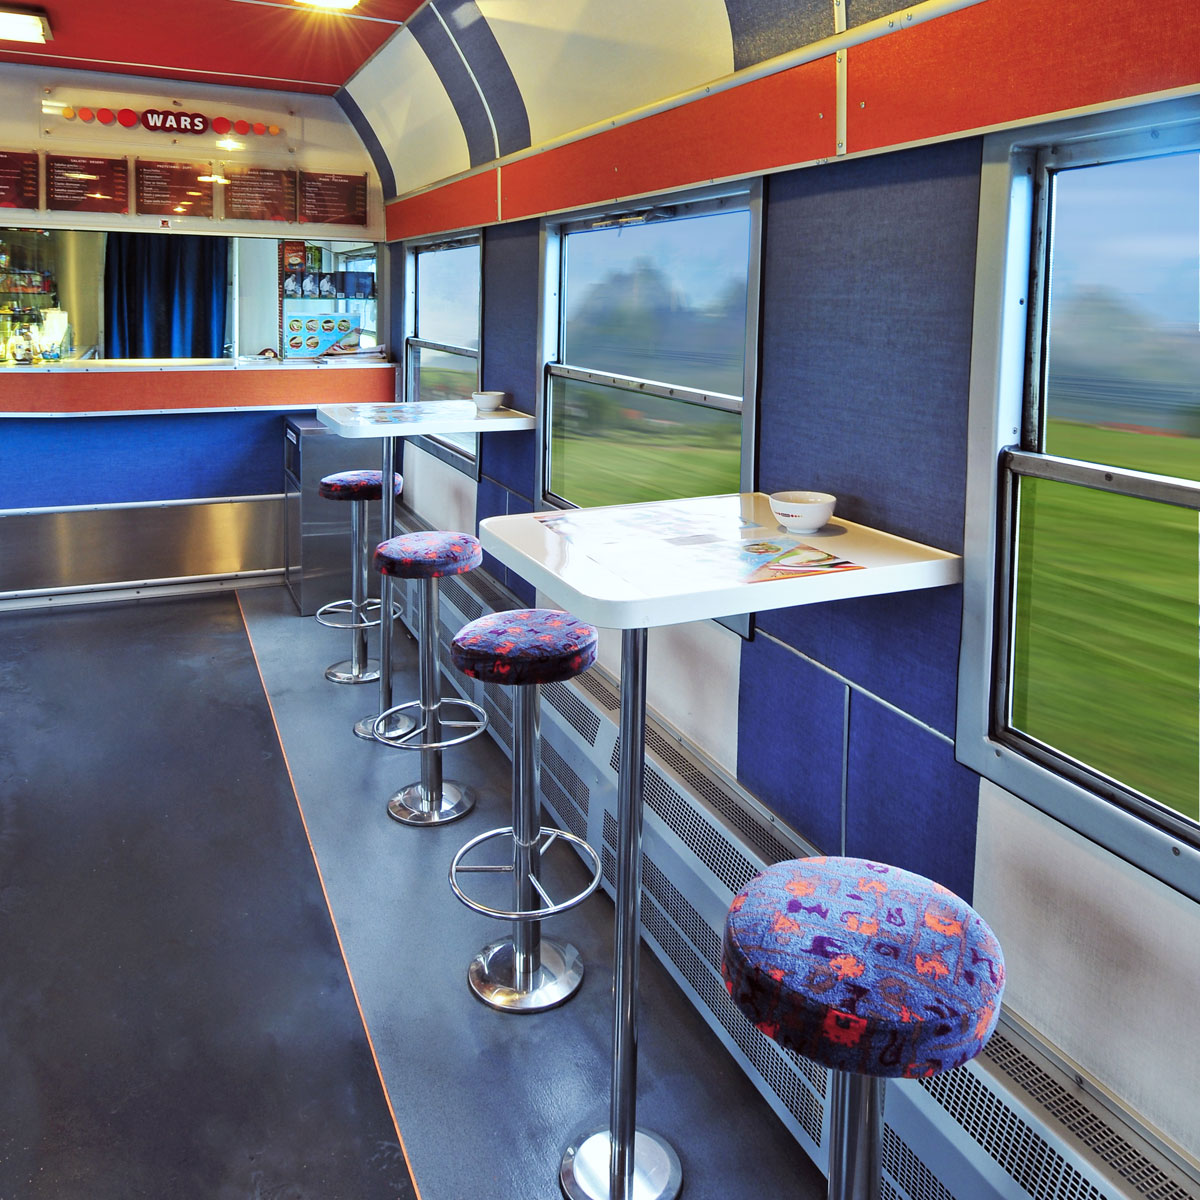 Wars buffet car (photo courtesy Wars)